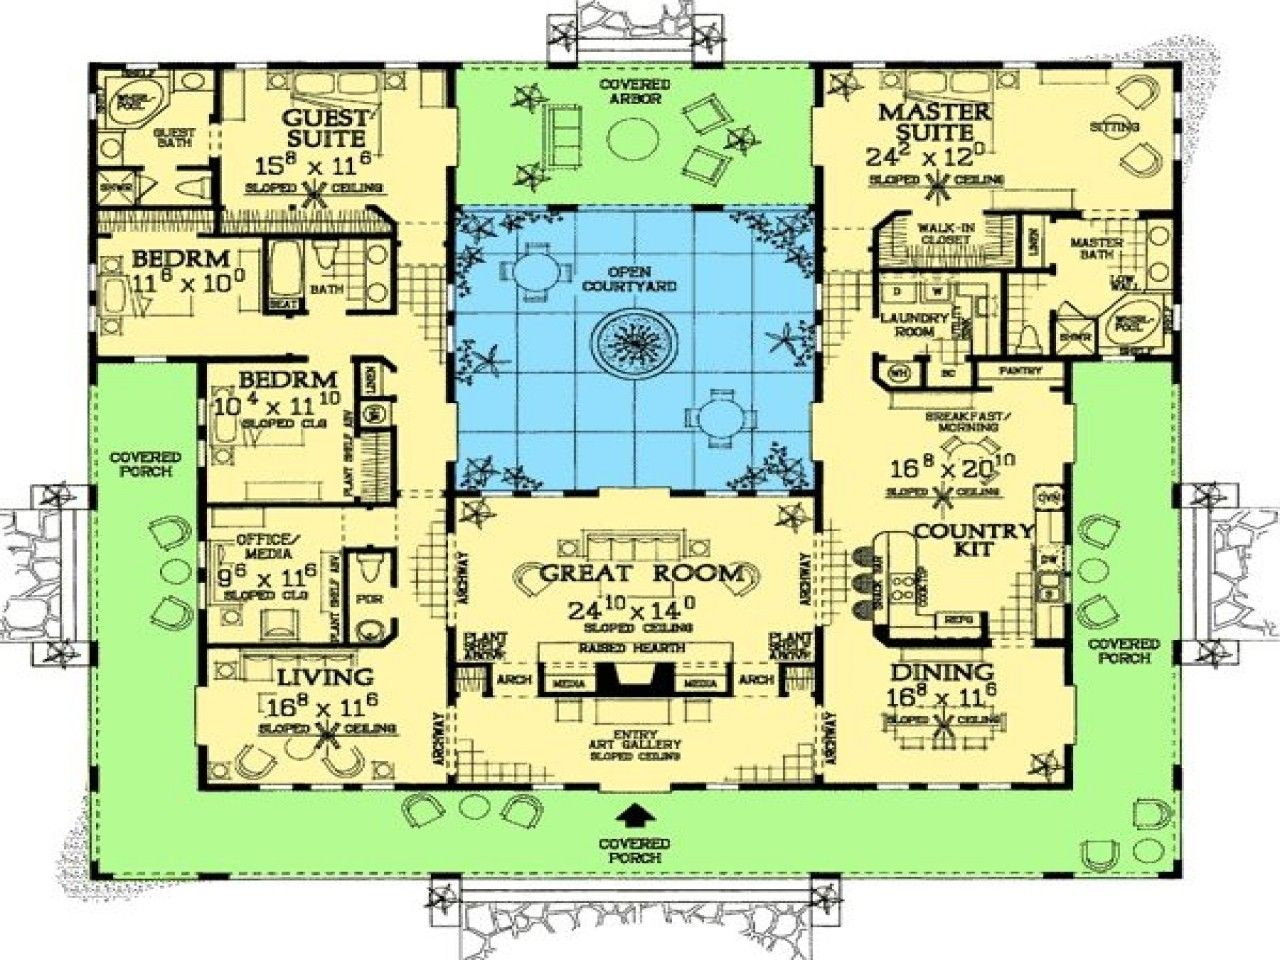 Adobe House Plans With Courtyard Fresh Center Brilliant Pool In Pool House Plans Mediterranean House Plans Courtyard House Plans